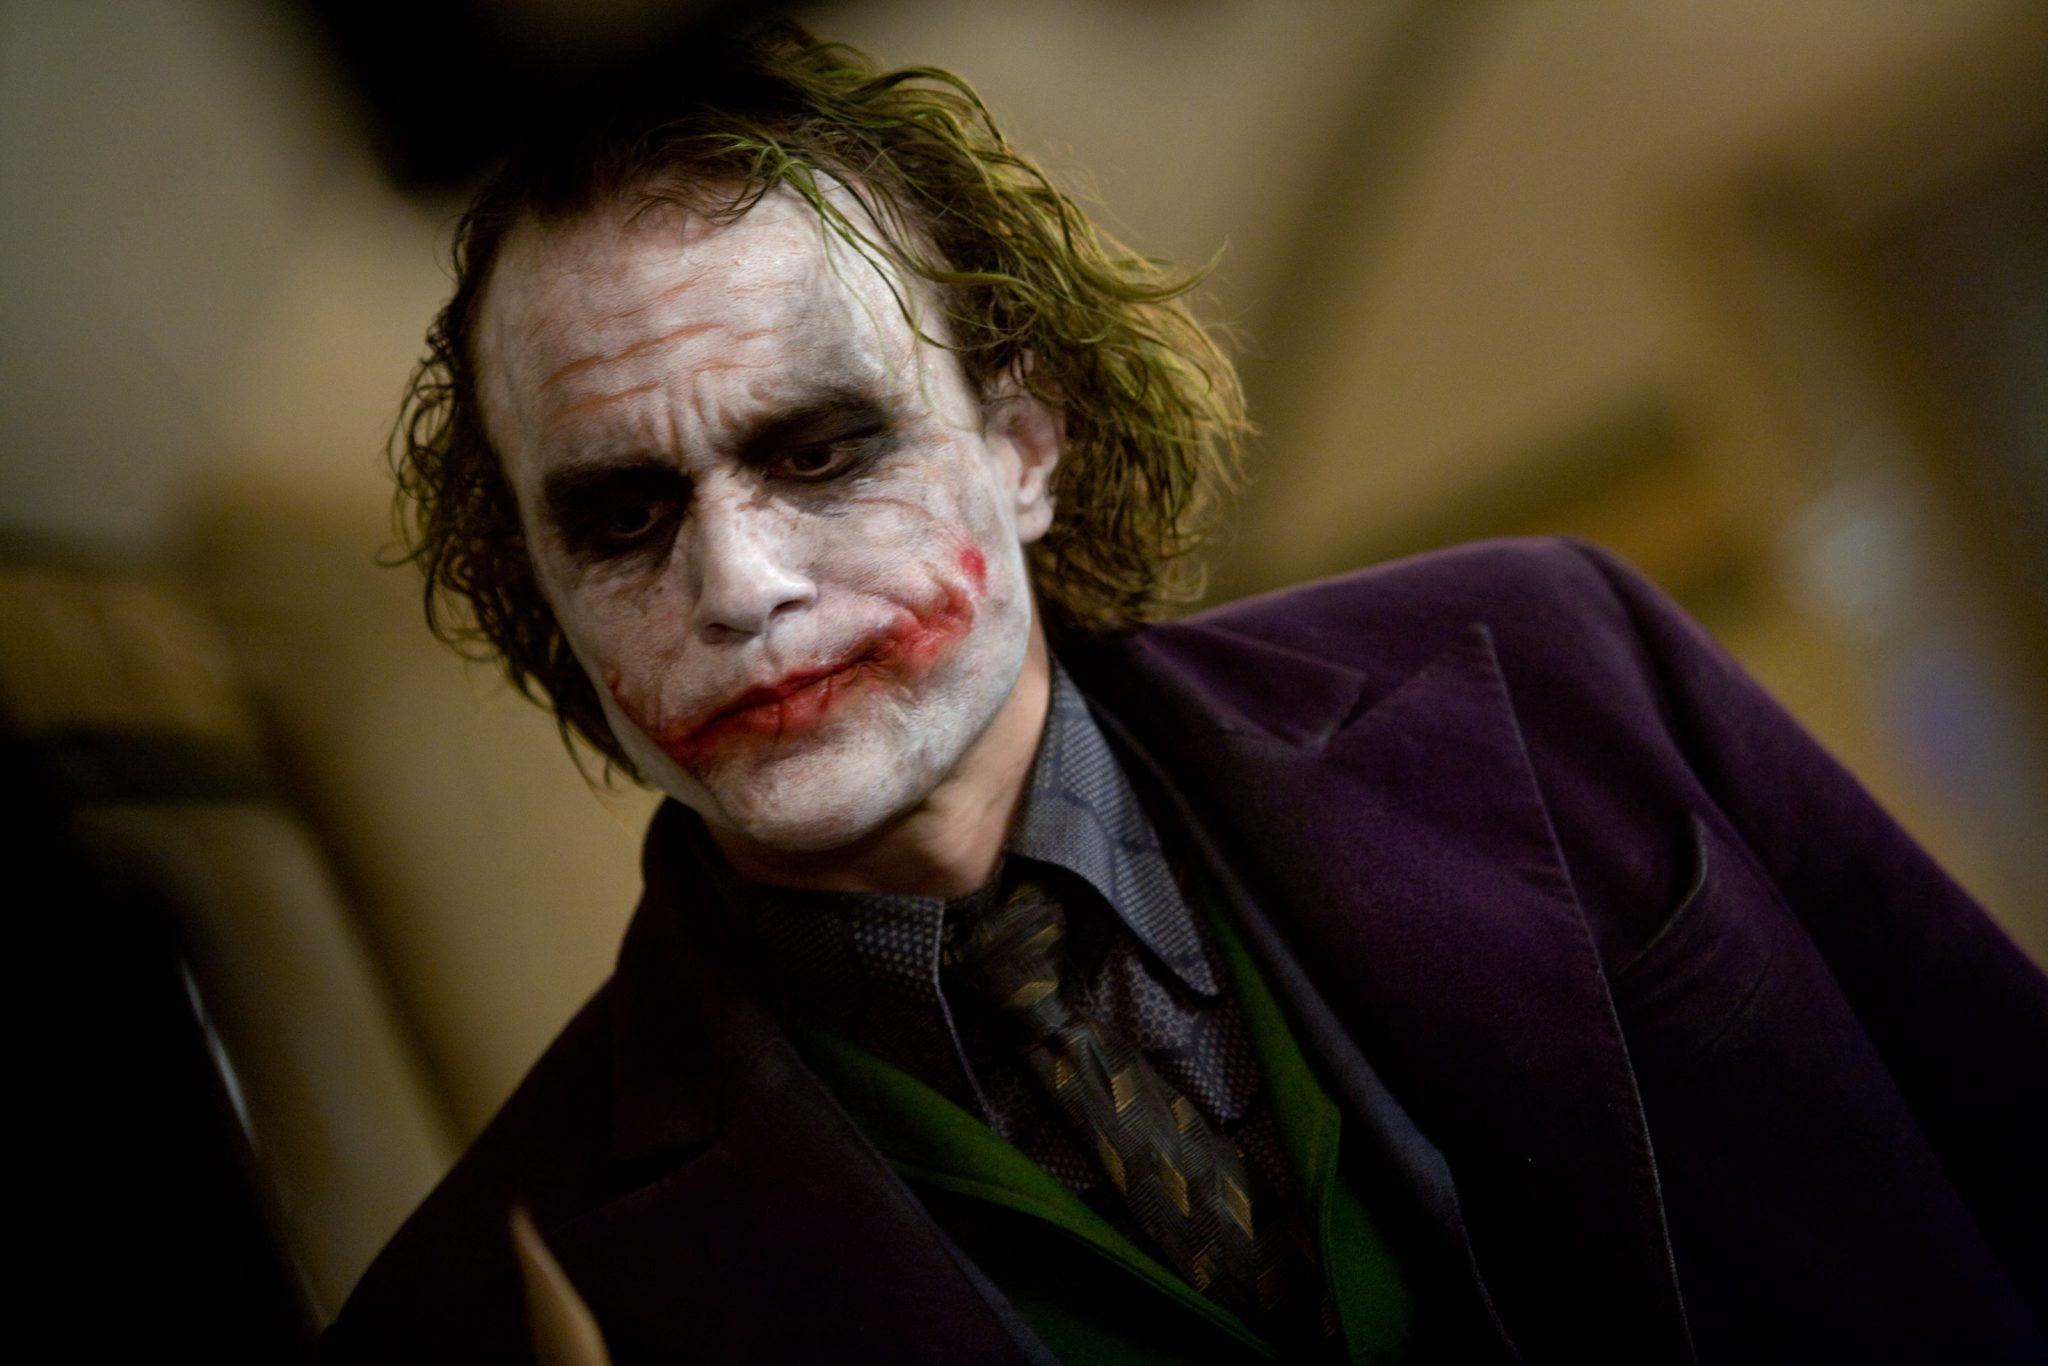 Heath Ledger's father speaks about son's posthumous Oscar win for The Dark Knight